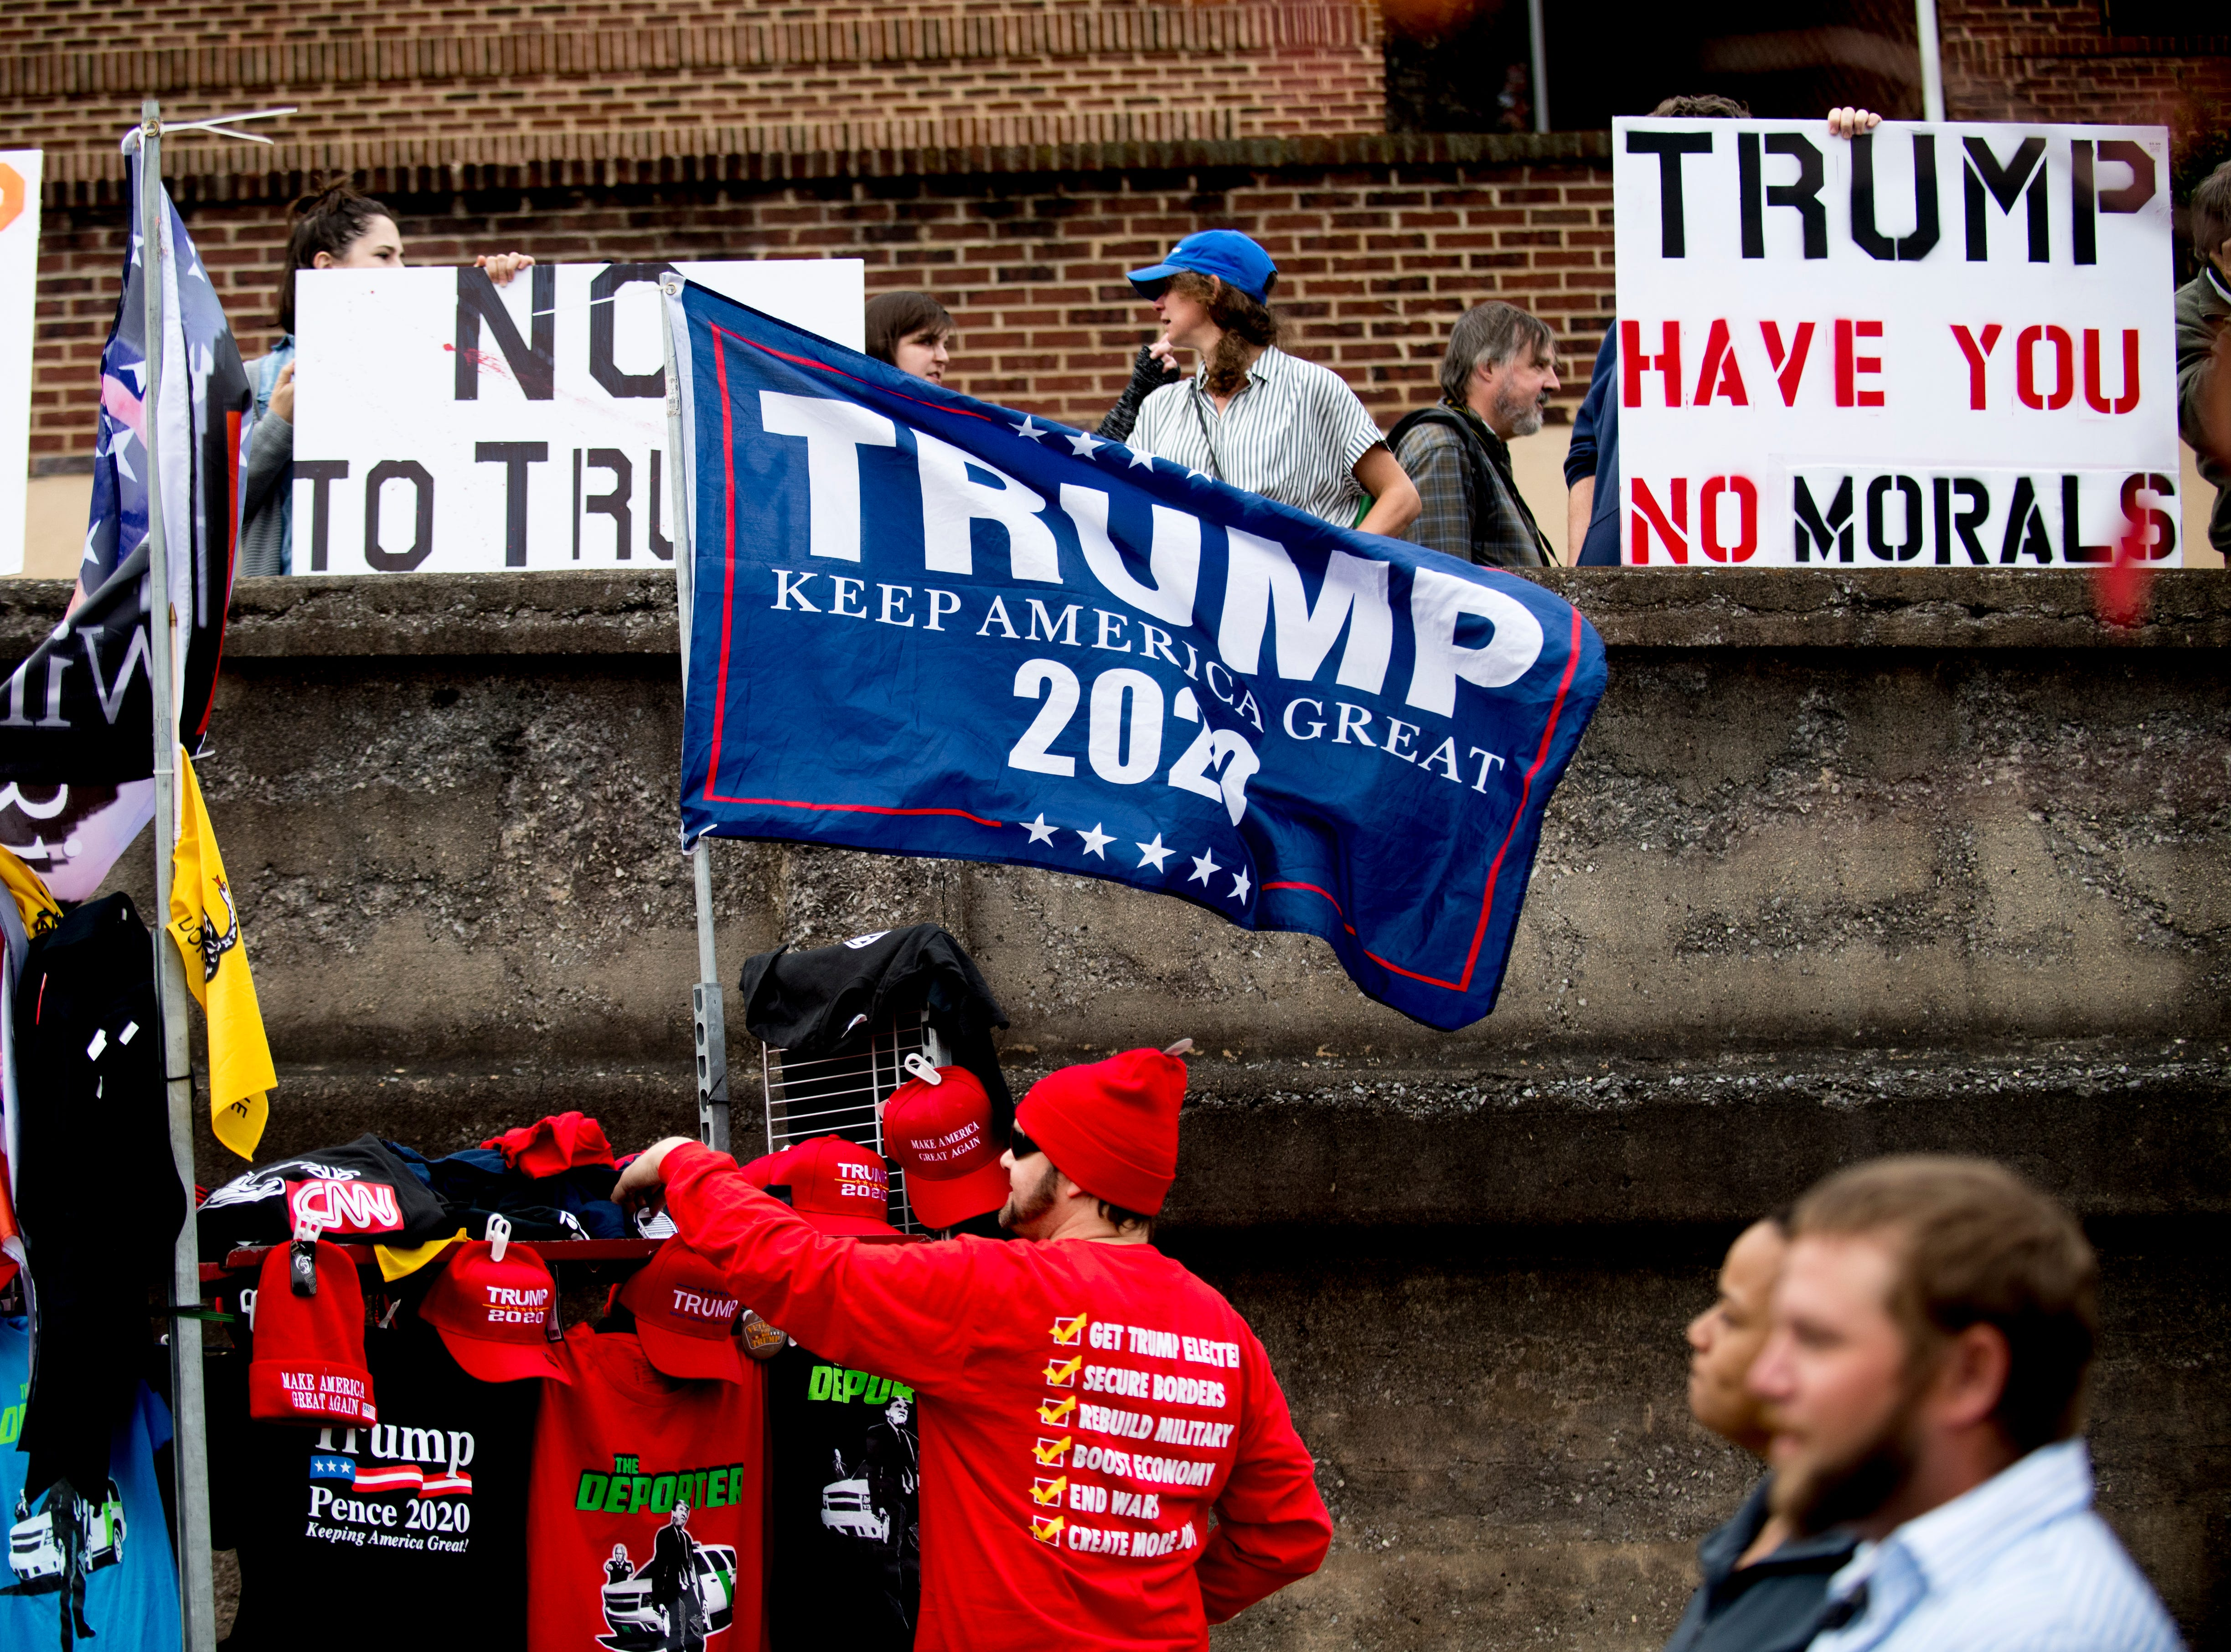 """Merchandise is sold ahead of President Donald J. Trump's """"Make America Great Again"""" Rally at McKenzie Arena in Chattanooga, Tennessee on Sunday, November 4, 2018."""